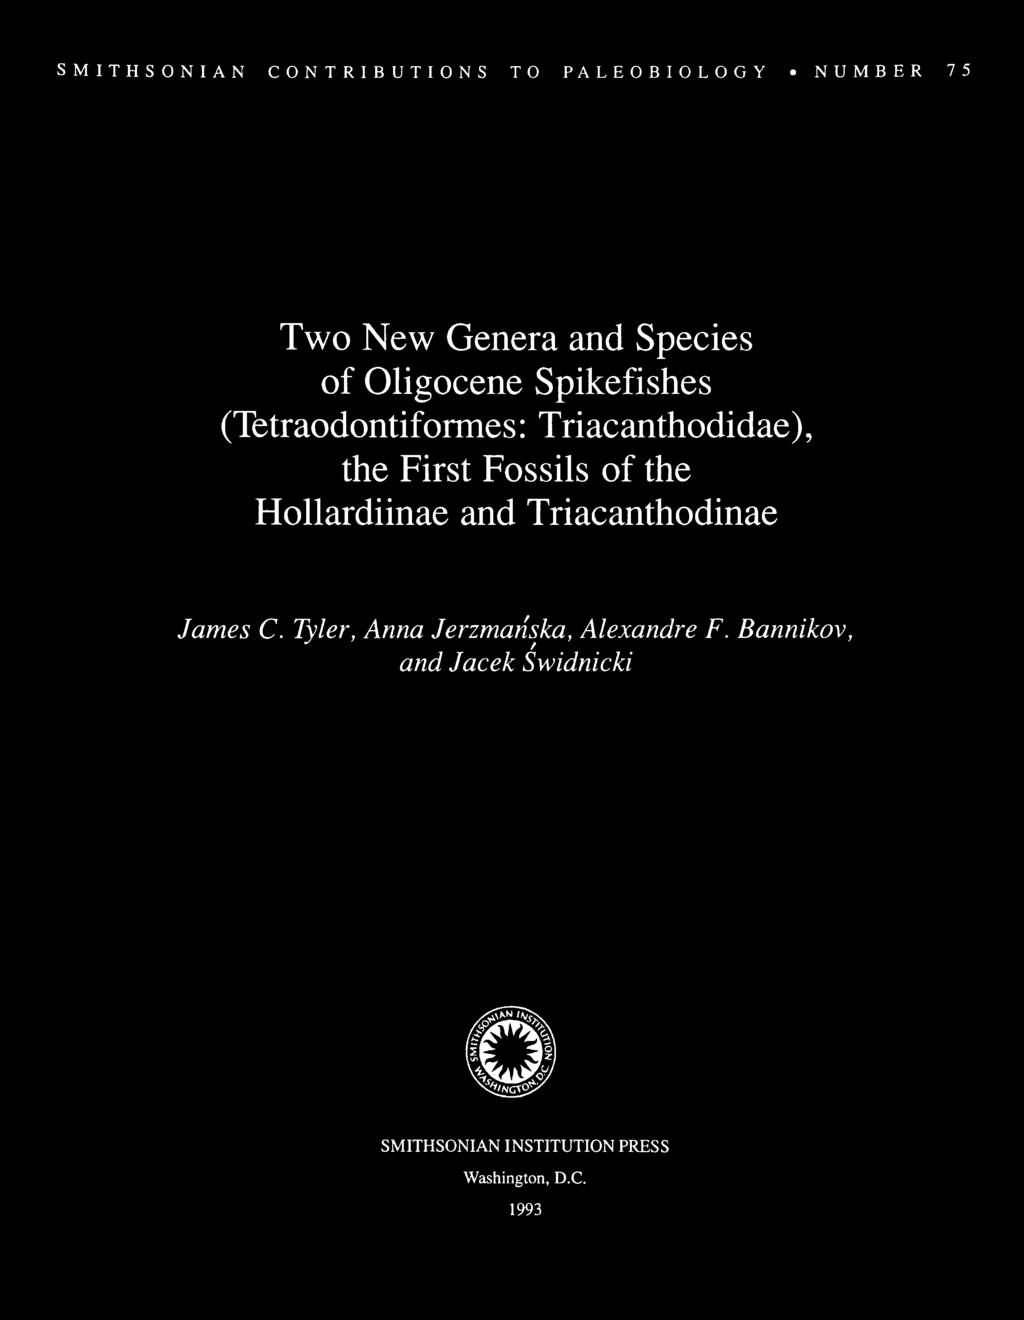 SMITHSONIAN CONTRIBUTIONS TO PALEOBIOLOGY NUMBER 75 Two New Genera and Species of Oligocene Spikefishes (Tetraodontiformes: Triacanthodidae), the First Fossils of